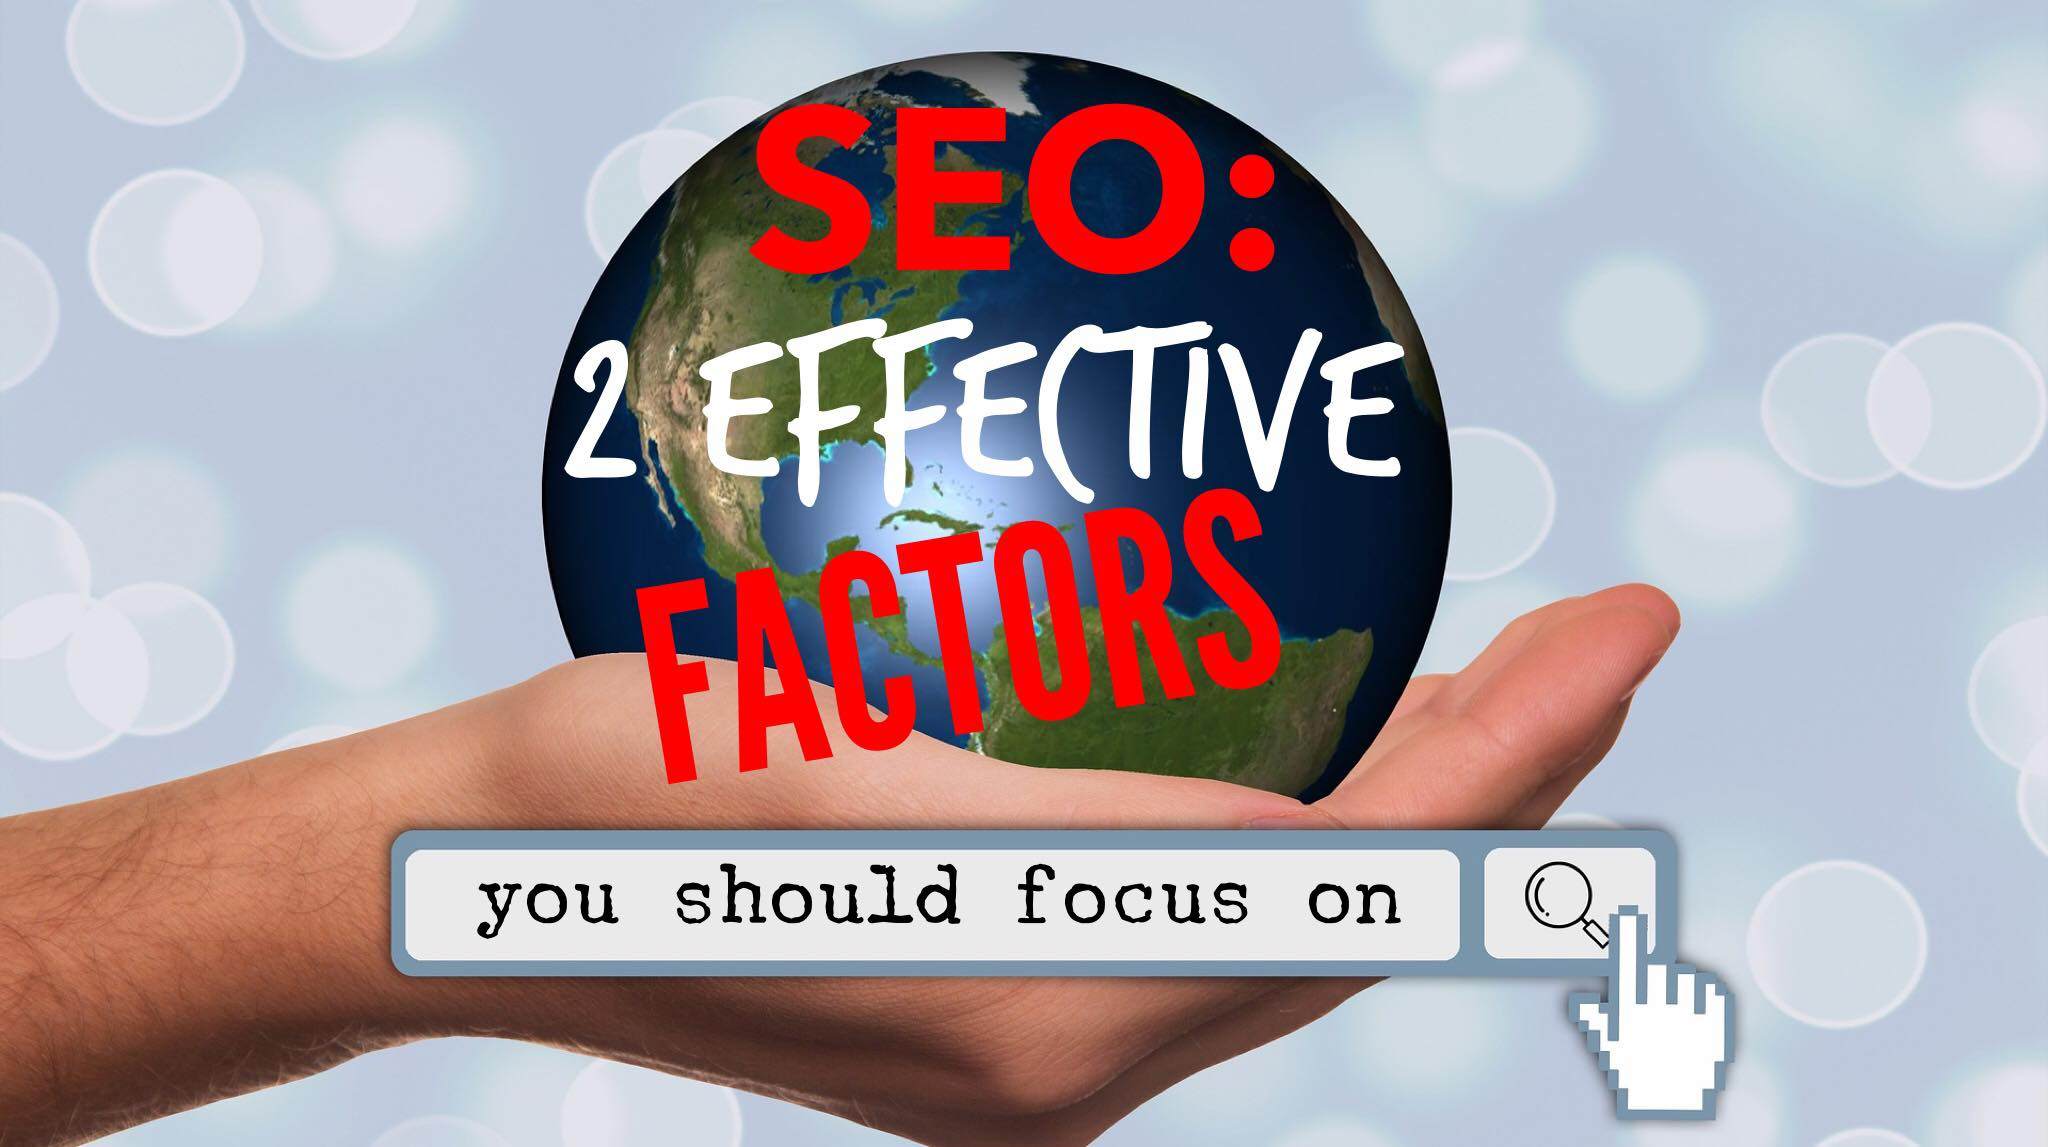 SEO factors you should focus on